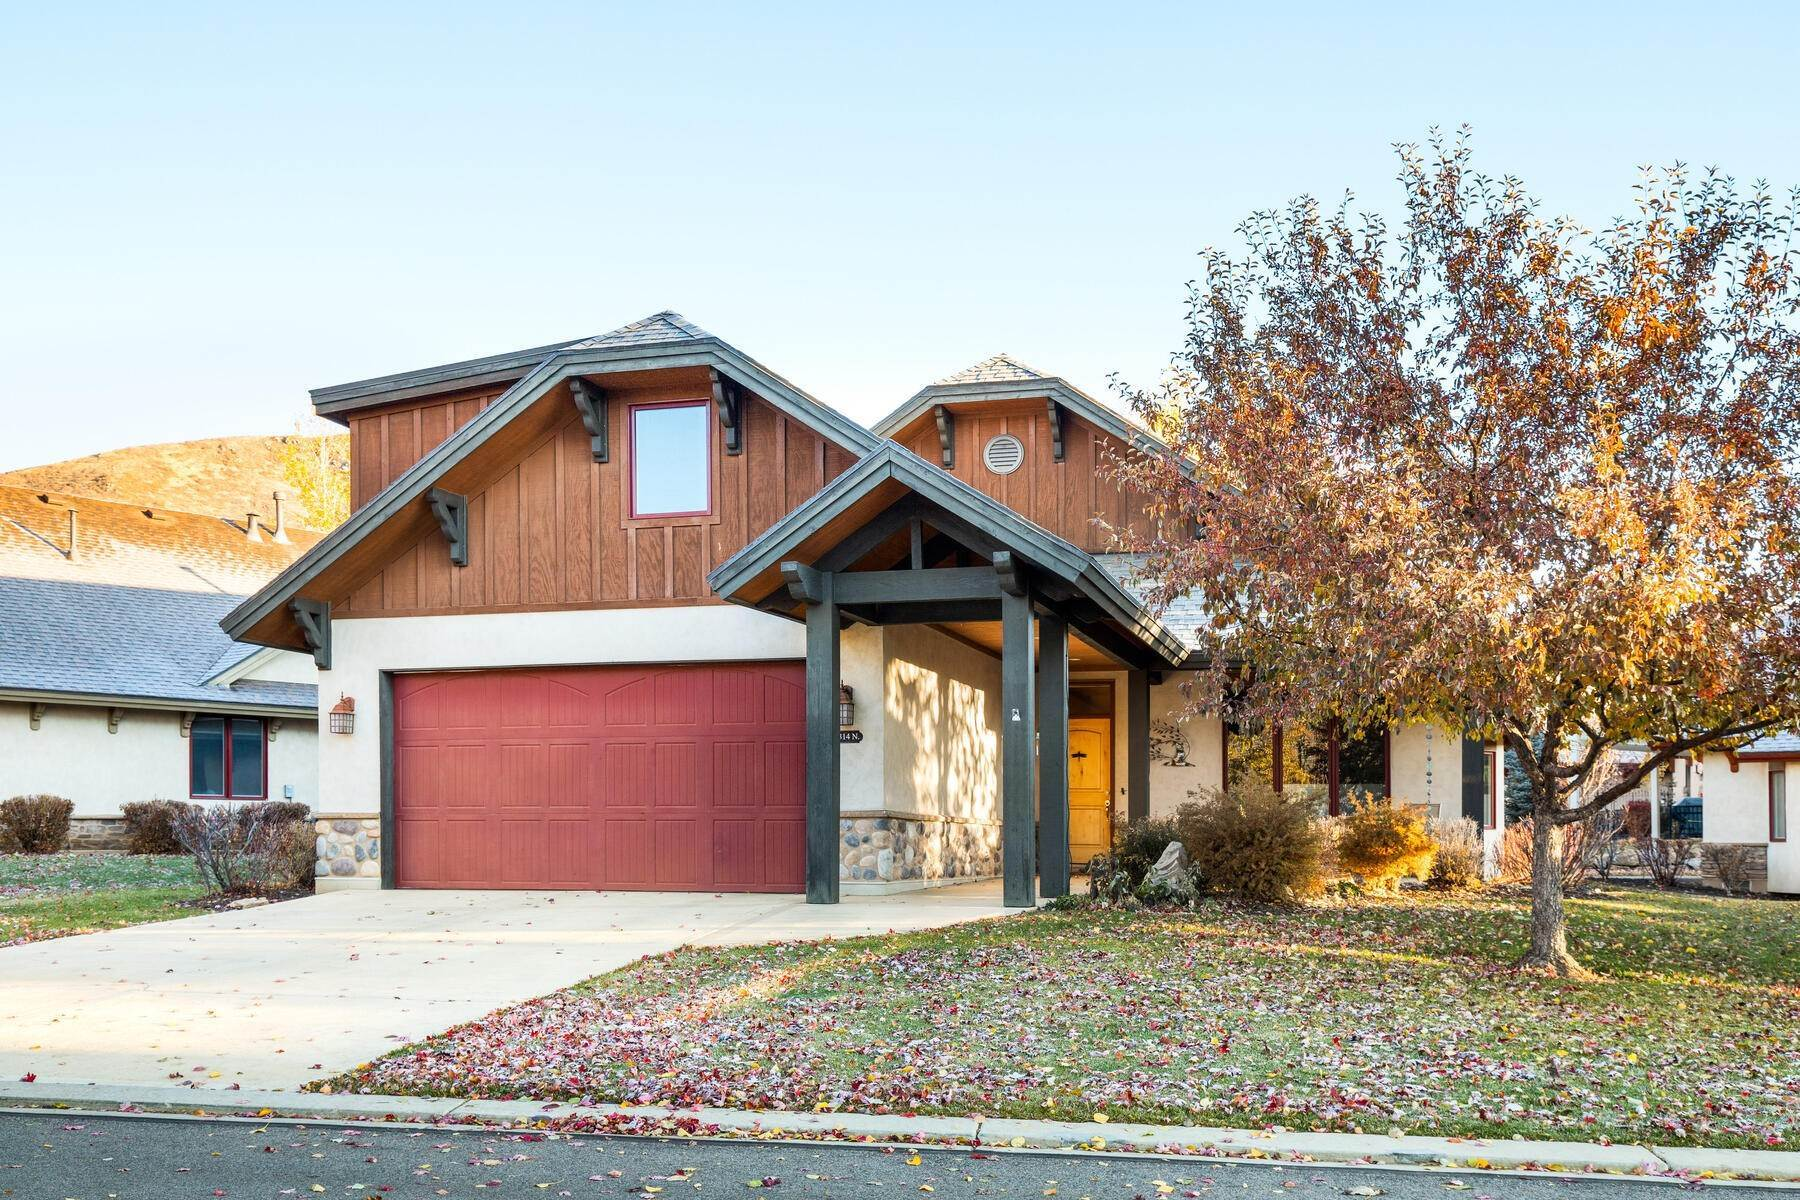 Property for Sale at Bright and Well Kept Home Nestled in one of Midway's Premier Communities 1314 N Montreux Dr Midway, Utah 84049 United States